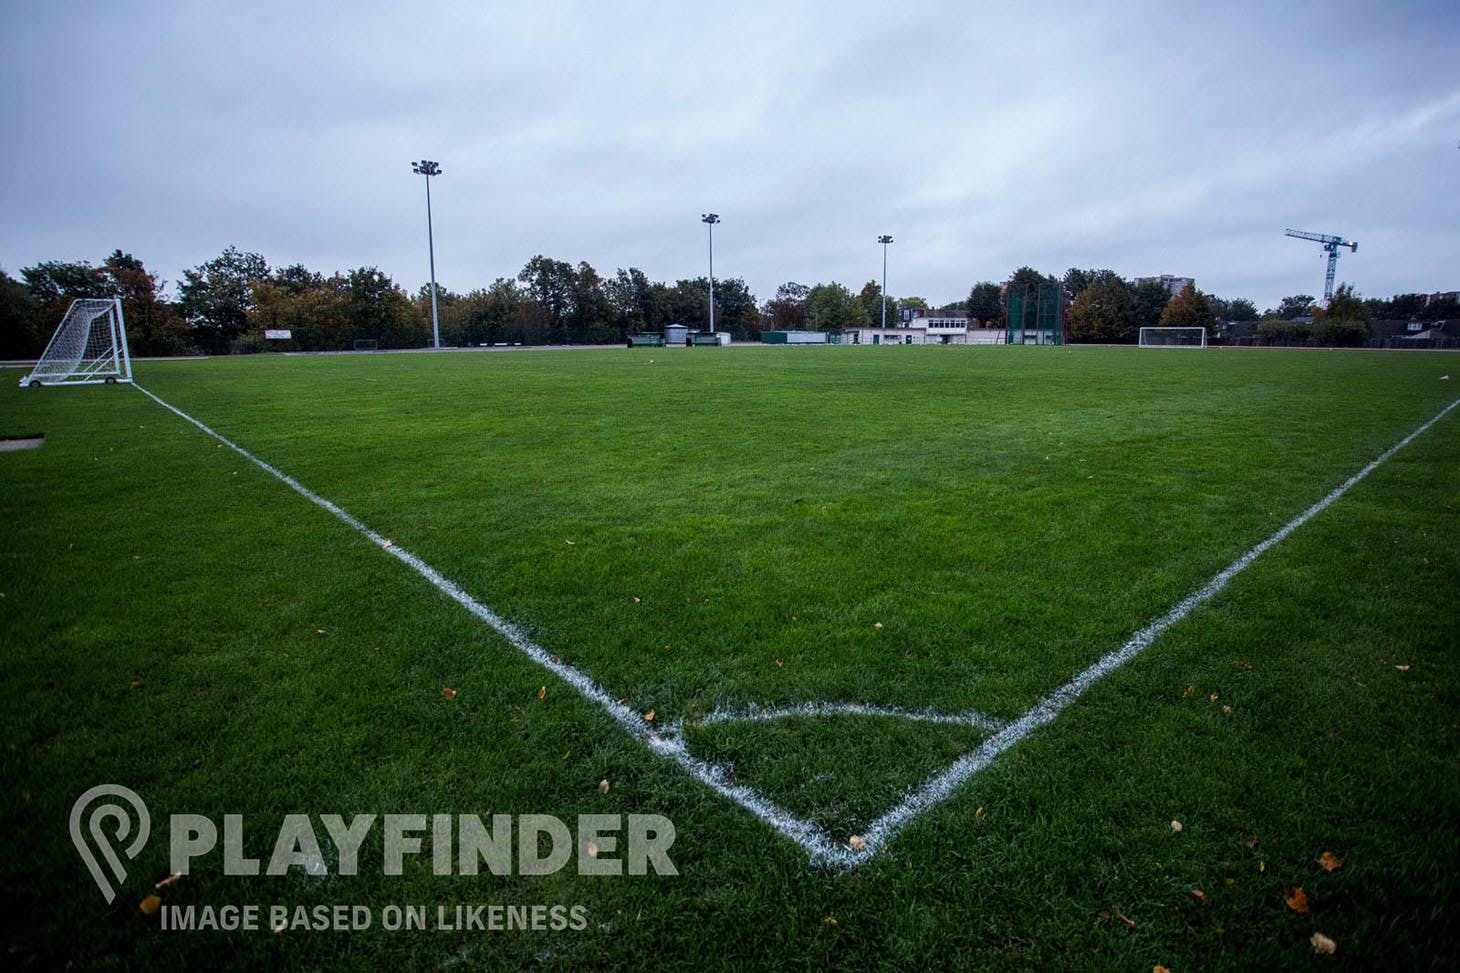 Wanstead Flats Playing Fields (Harrow Road) 11 a side | Grass football pitch